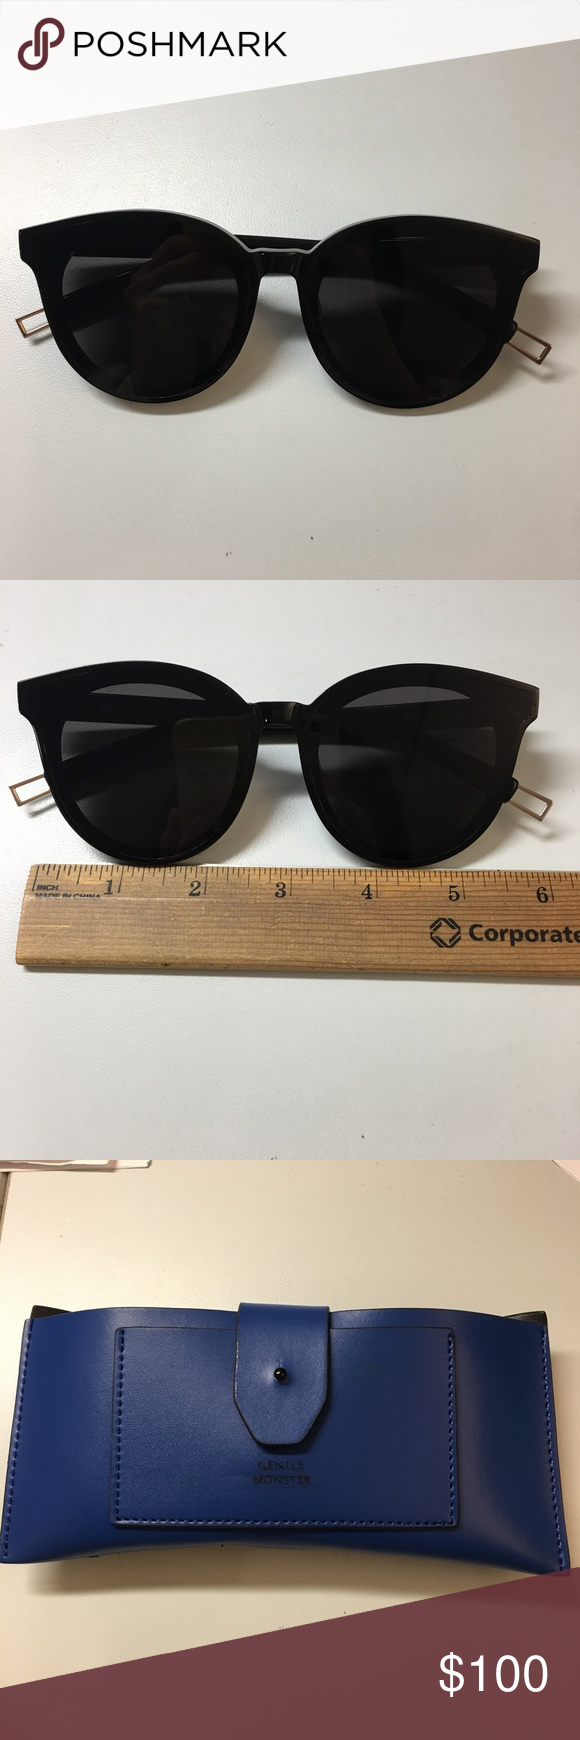 f15432015a0e Gentle monster black peter sunglasses Authentic gently used in great  condition. Comes with the sunglasses case but the box was damaged Gentle  Monster ...